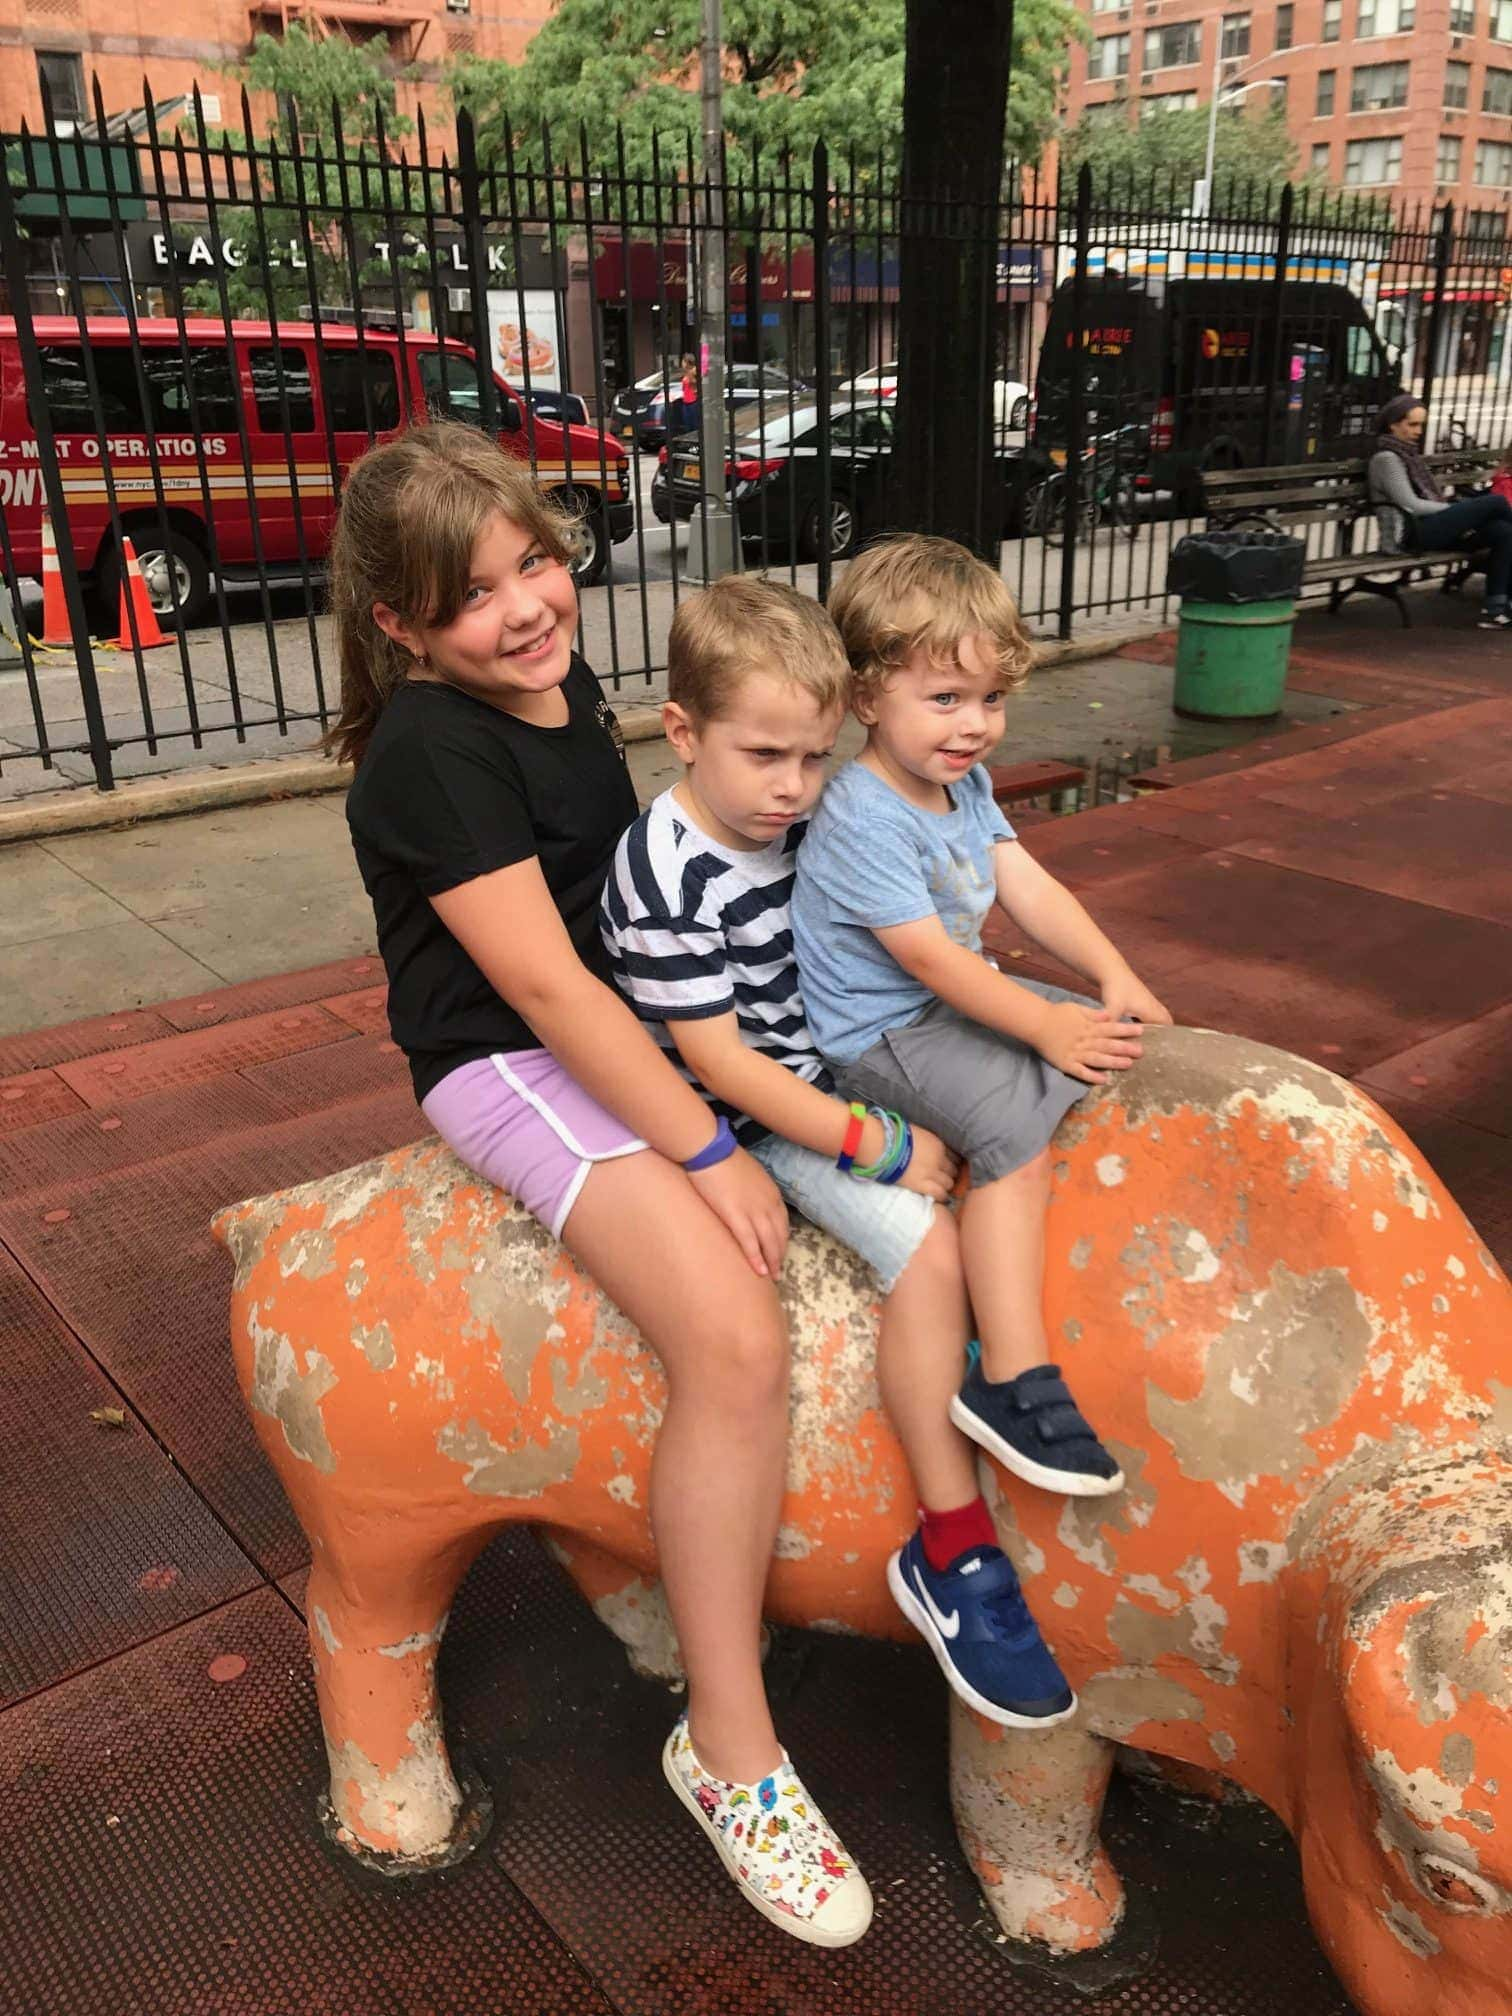 The kids on a statue